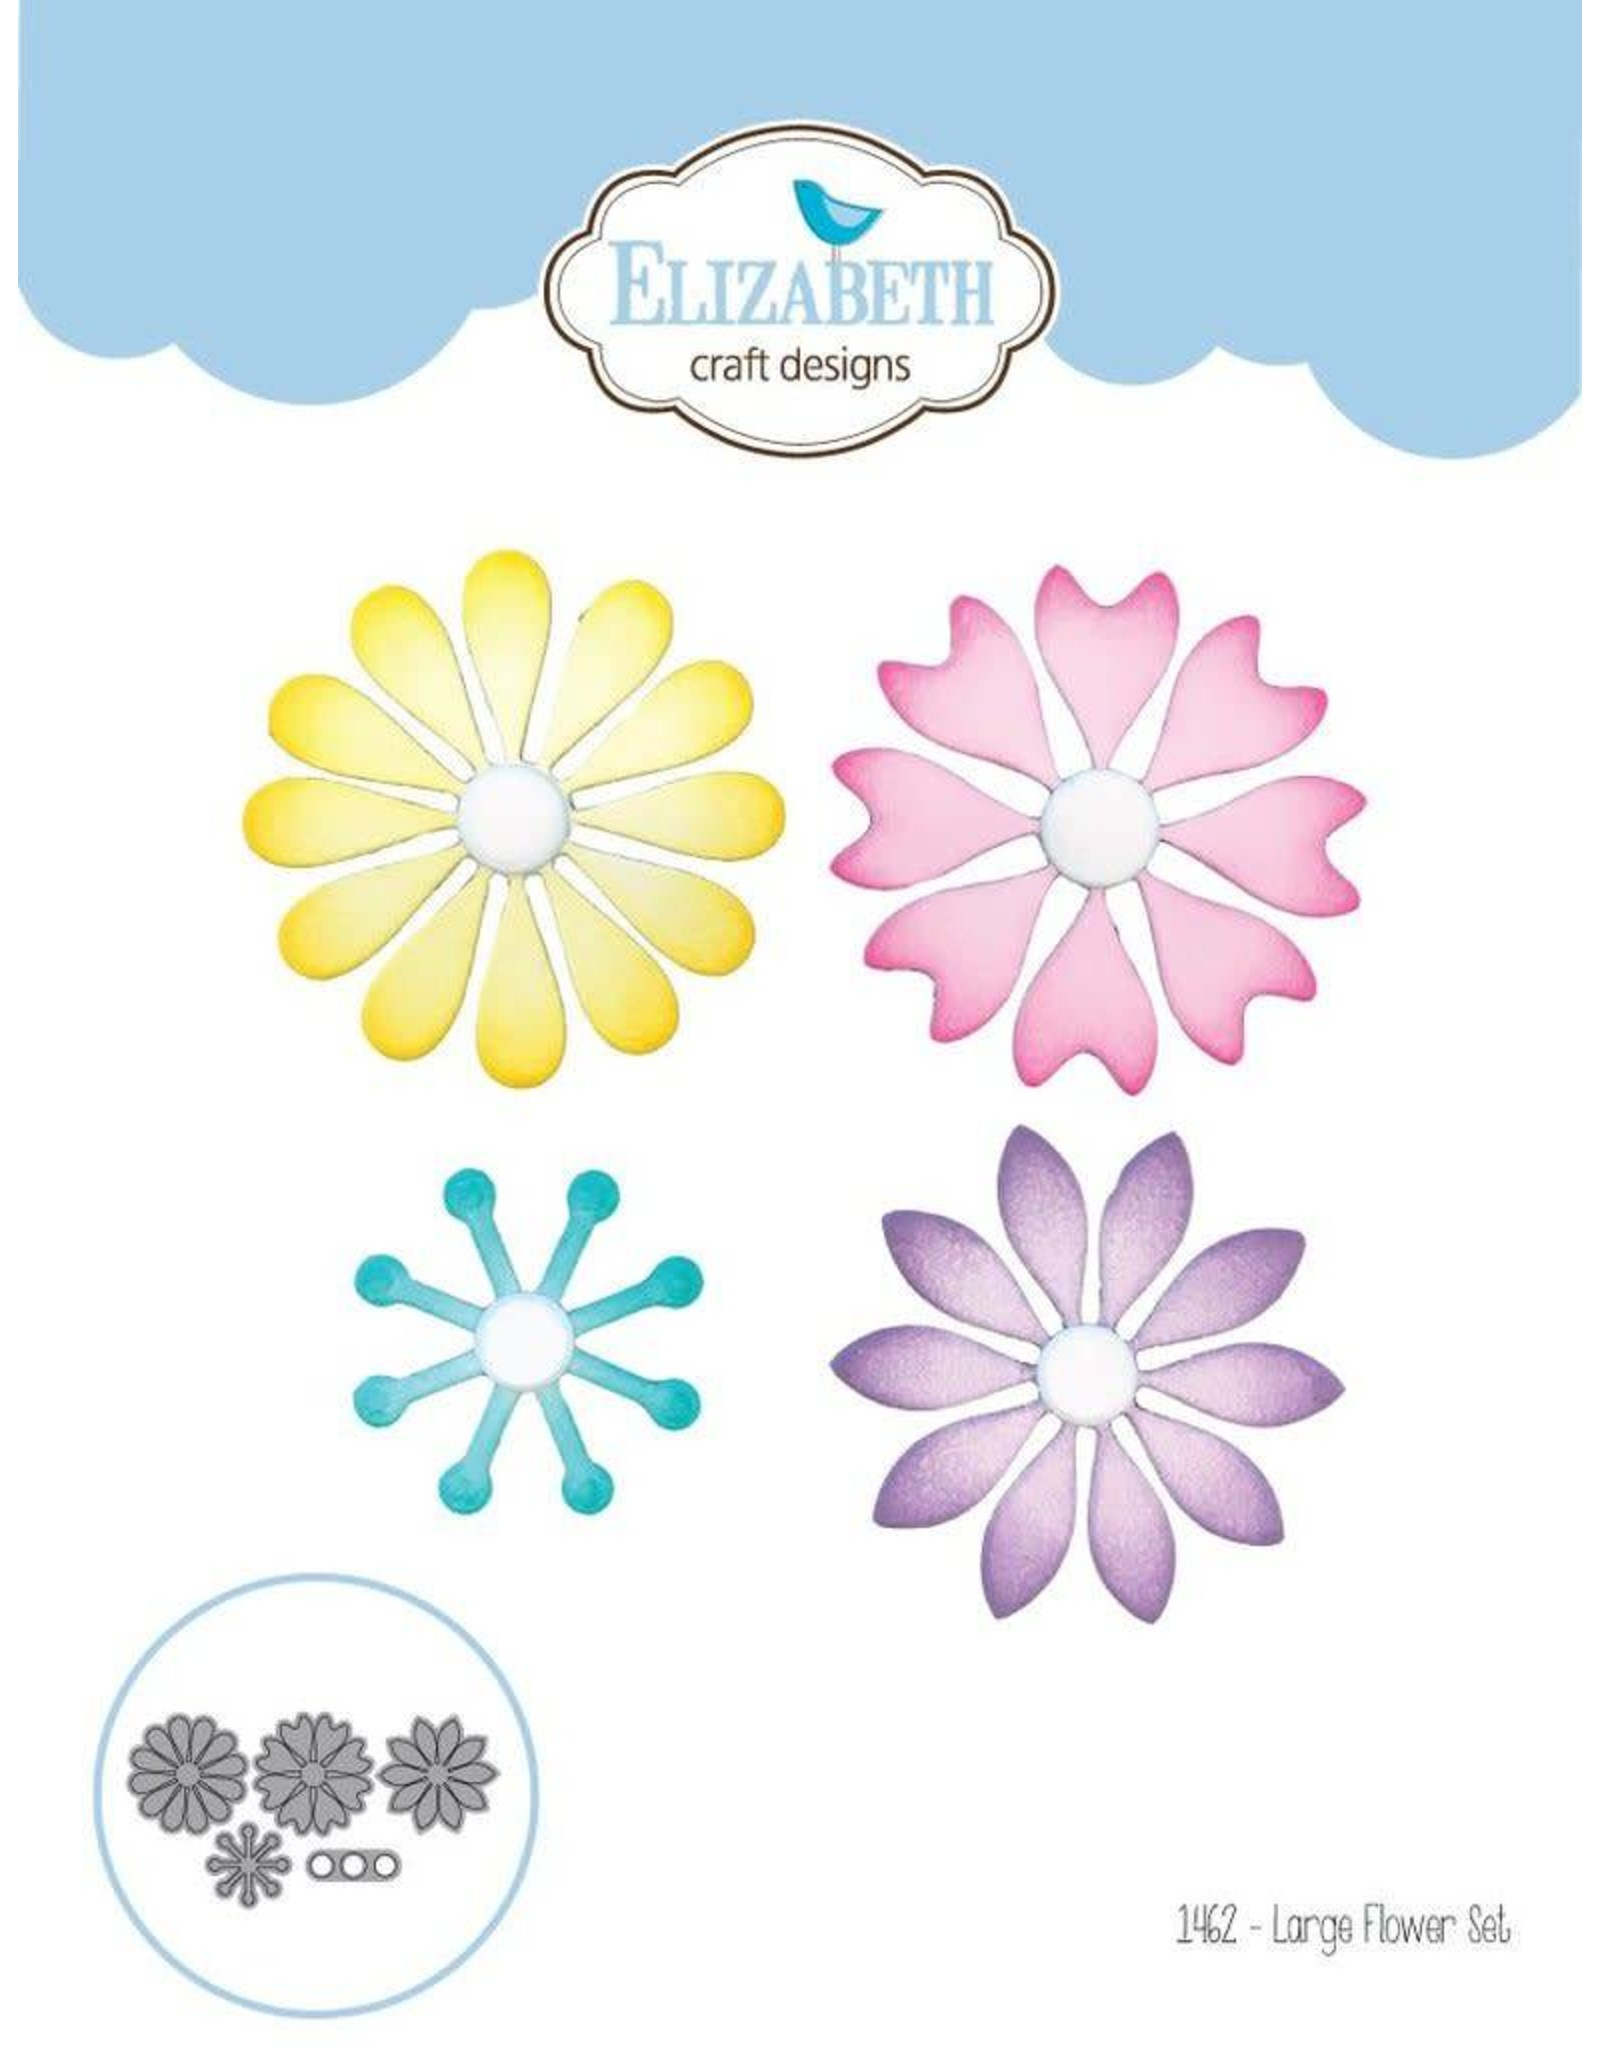 Elizabeth Craft Designs Elizabeth Craft Designs dies Die set - Large Flower Set 1462